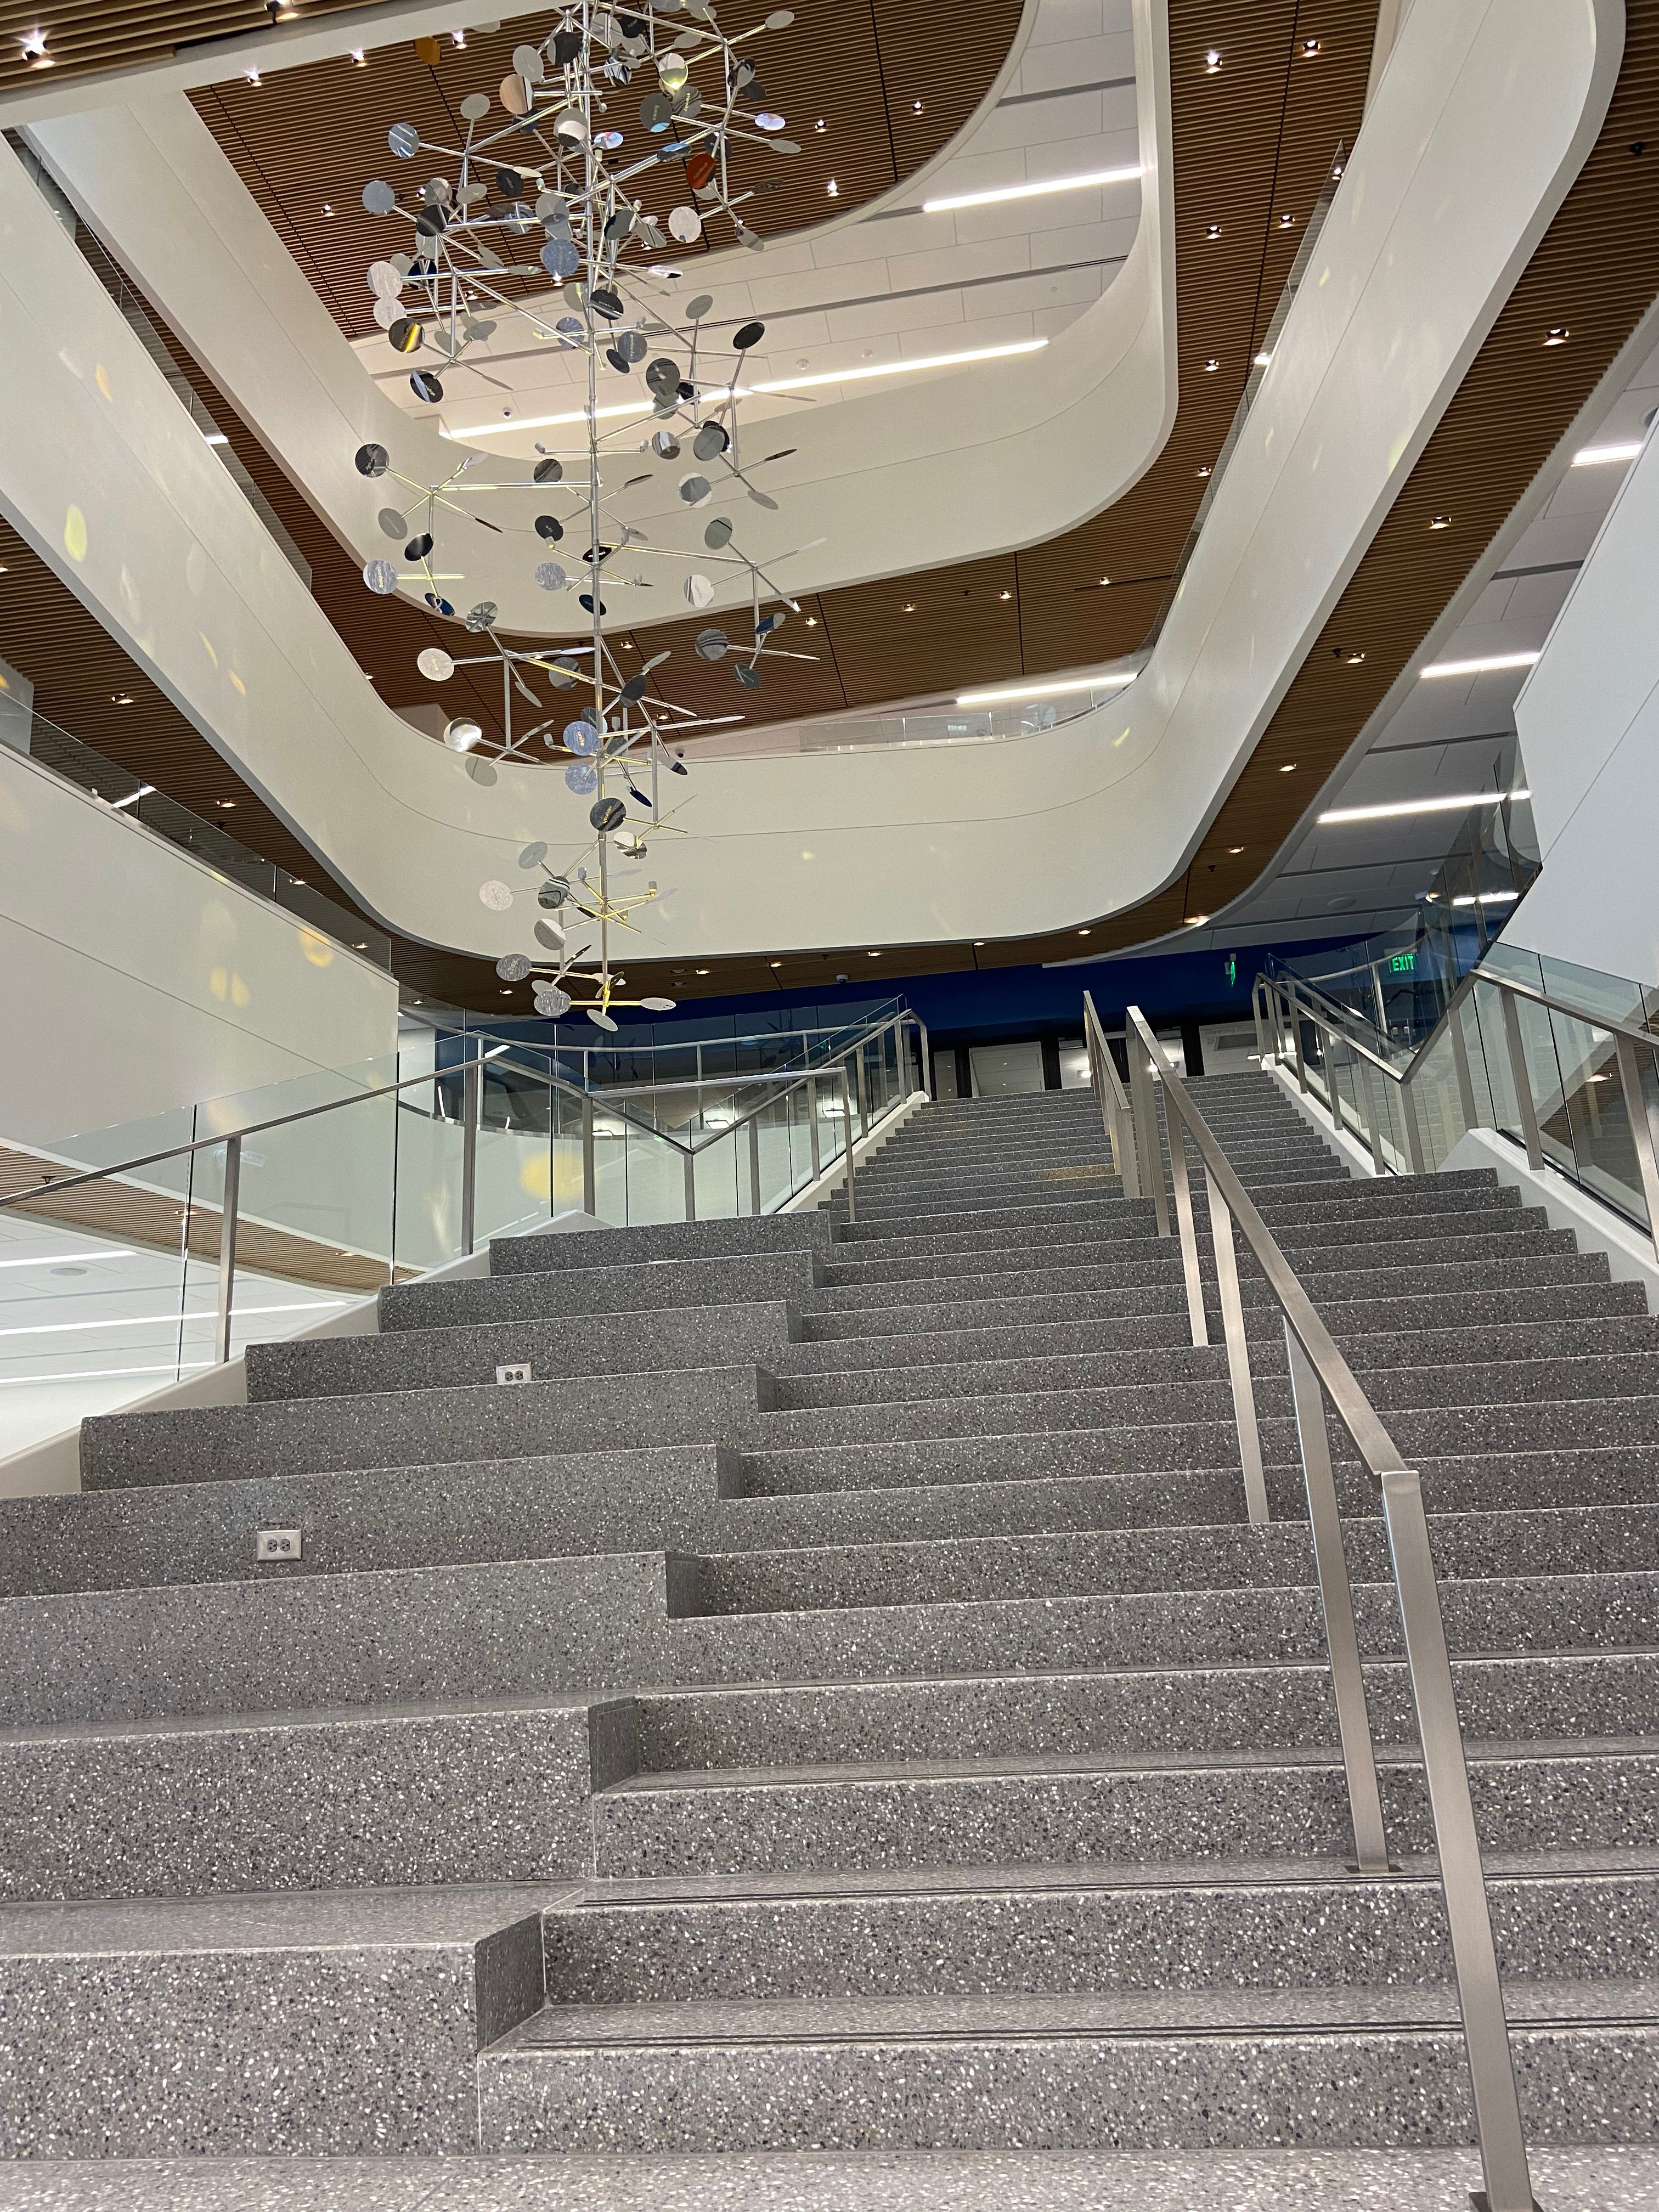 A new central staircase and airway offer auditorium-style seating and easy access to the second floor